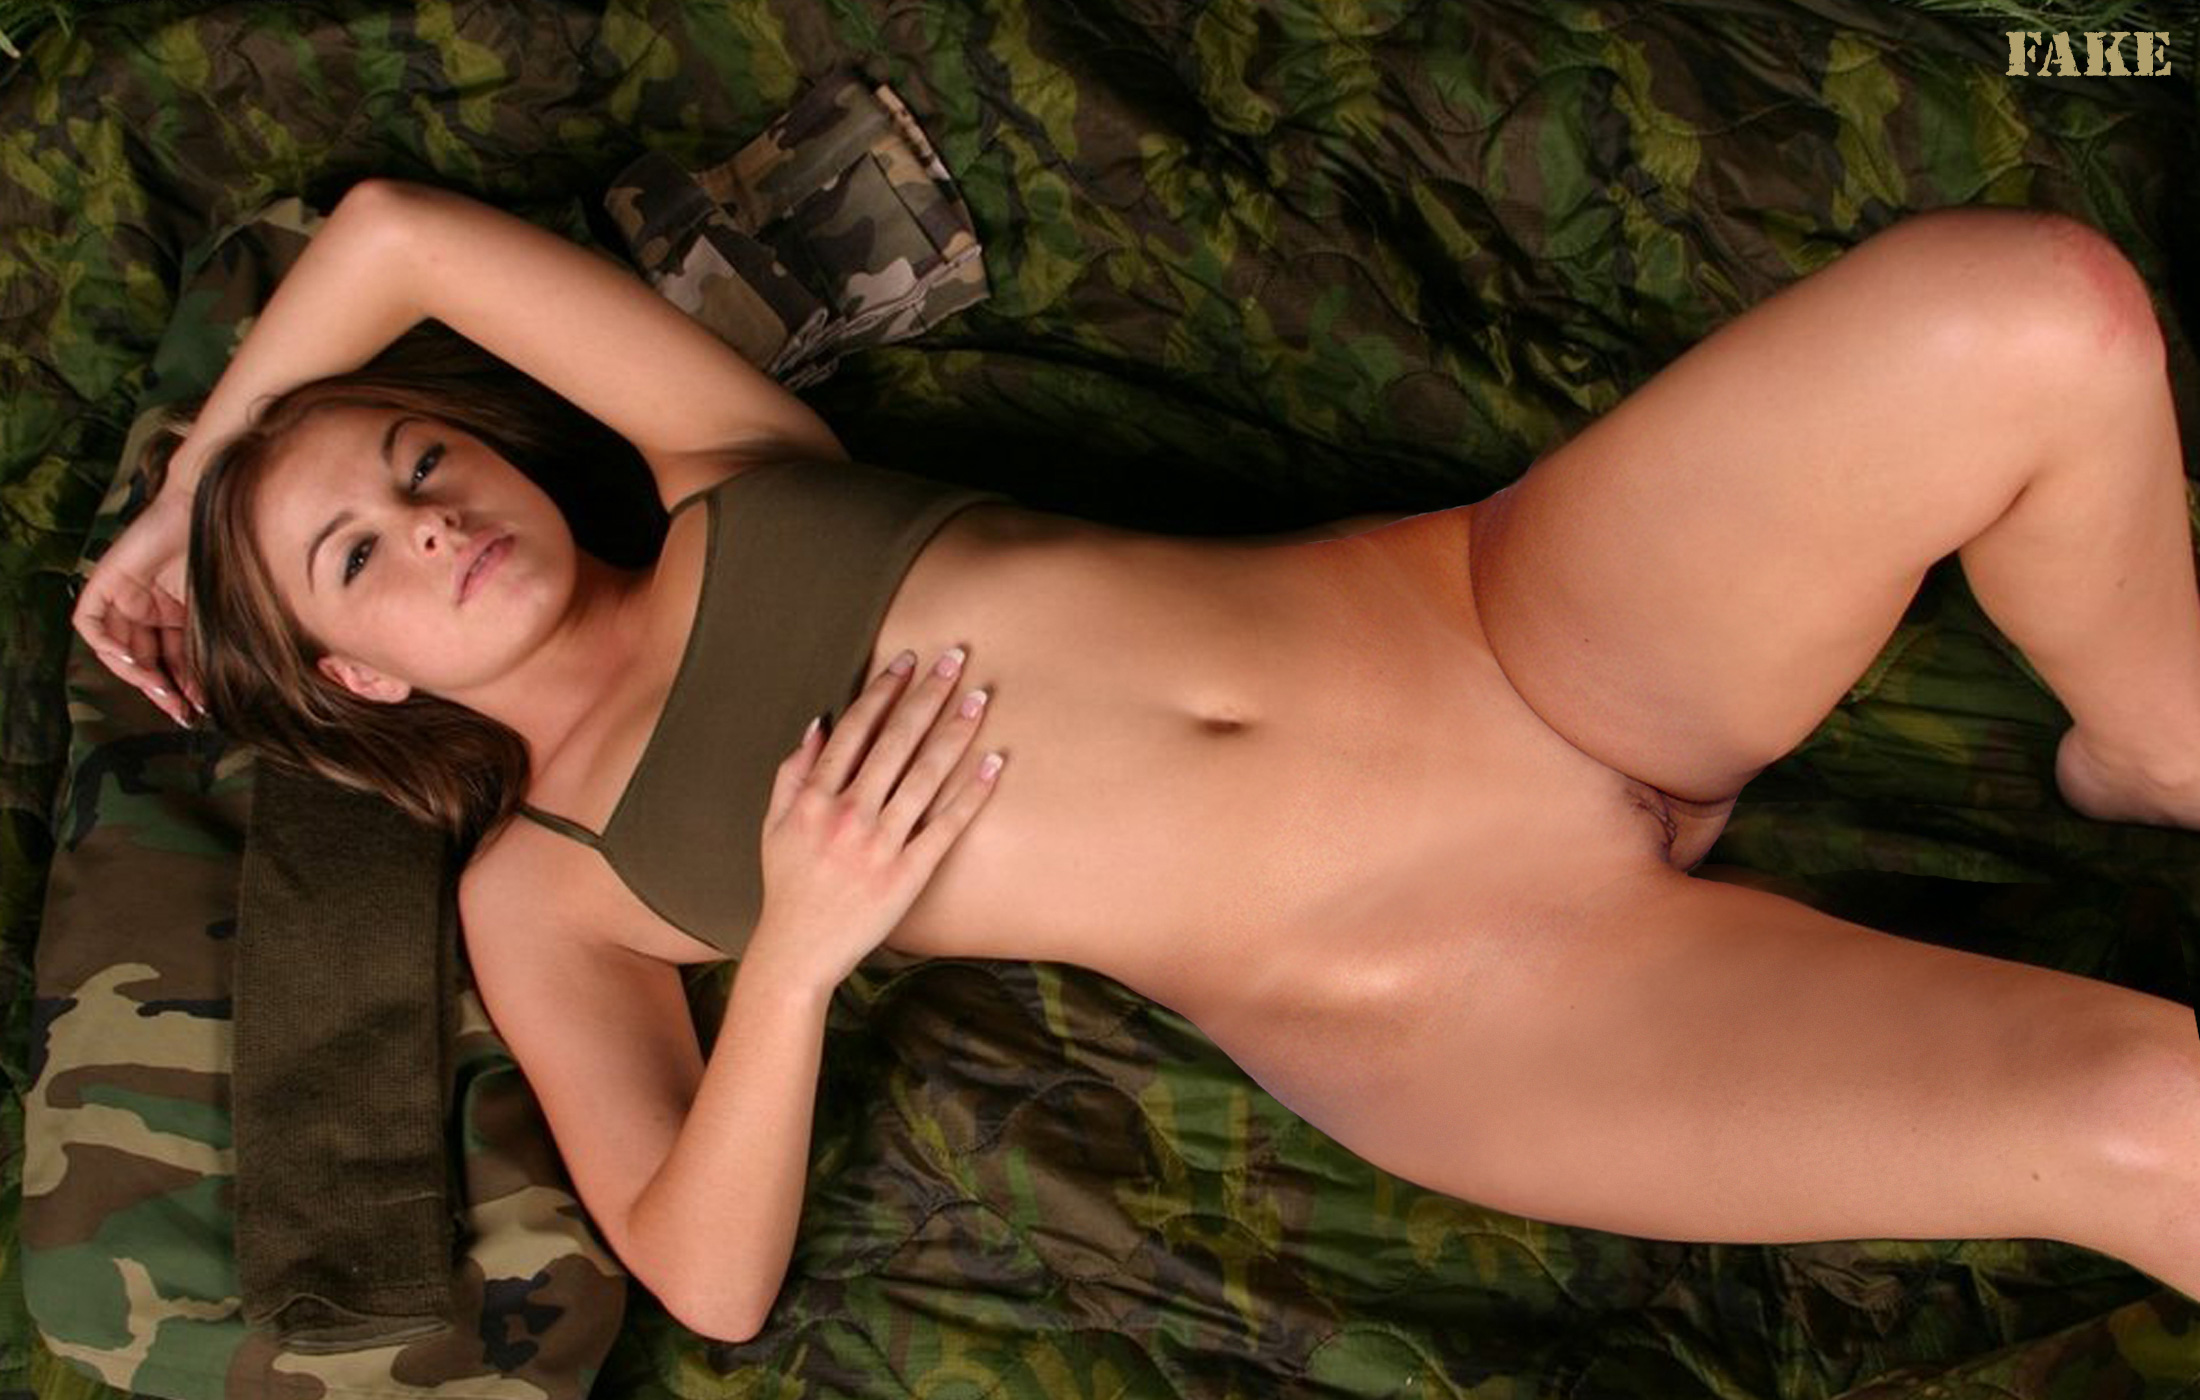 Pictures of homely naked women